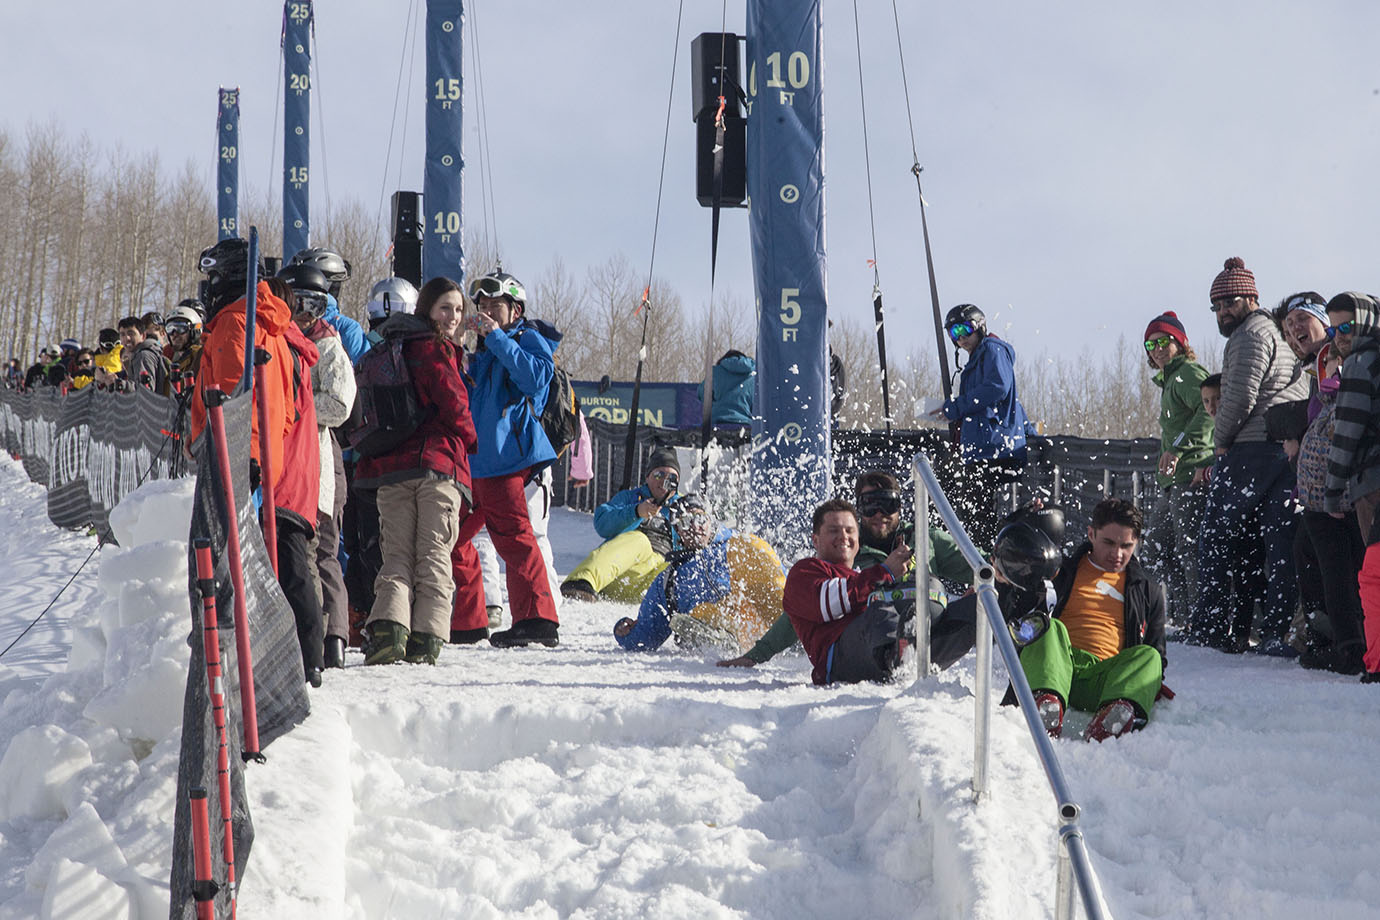 Spectators amuse themselves on the snow steps that lead up the left side of the superpipe wall, racing down on their backsides.